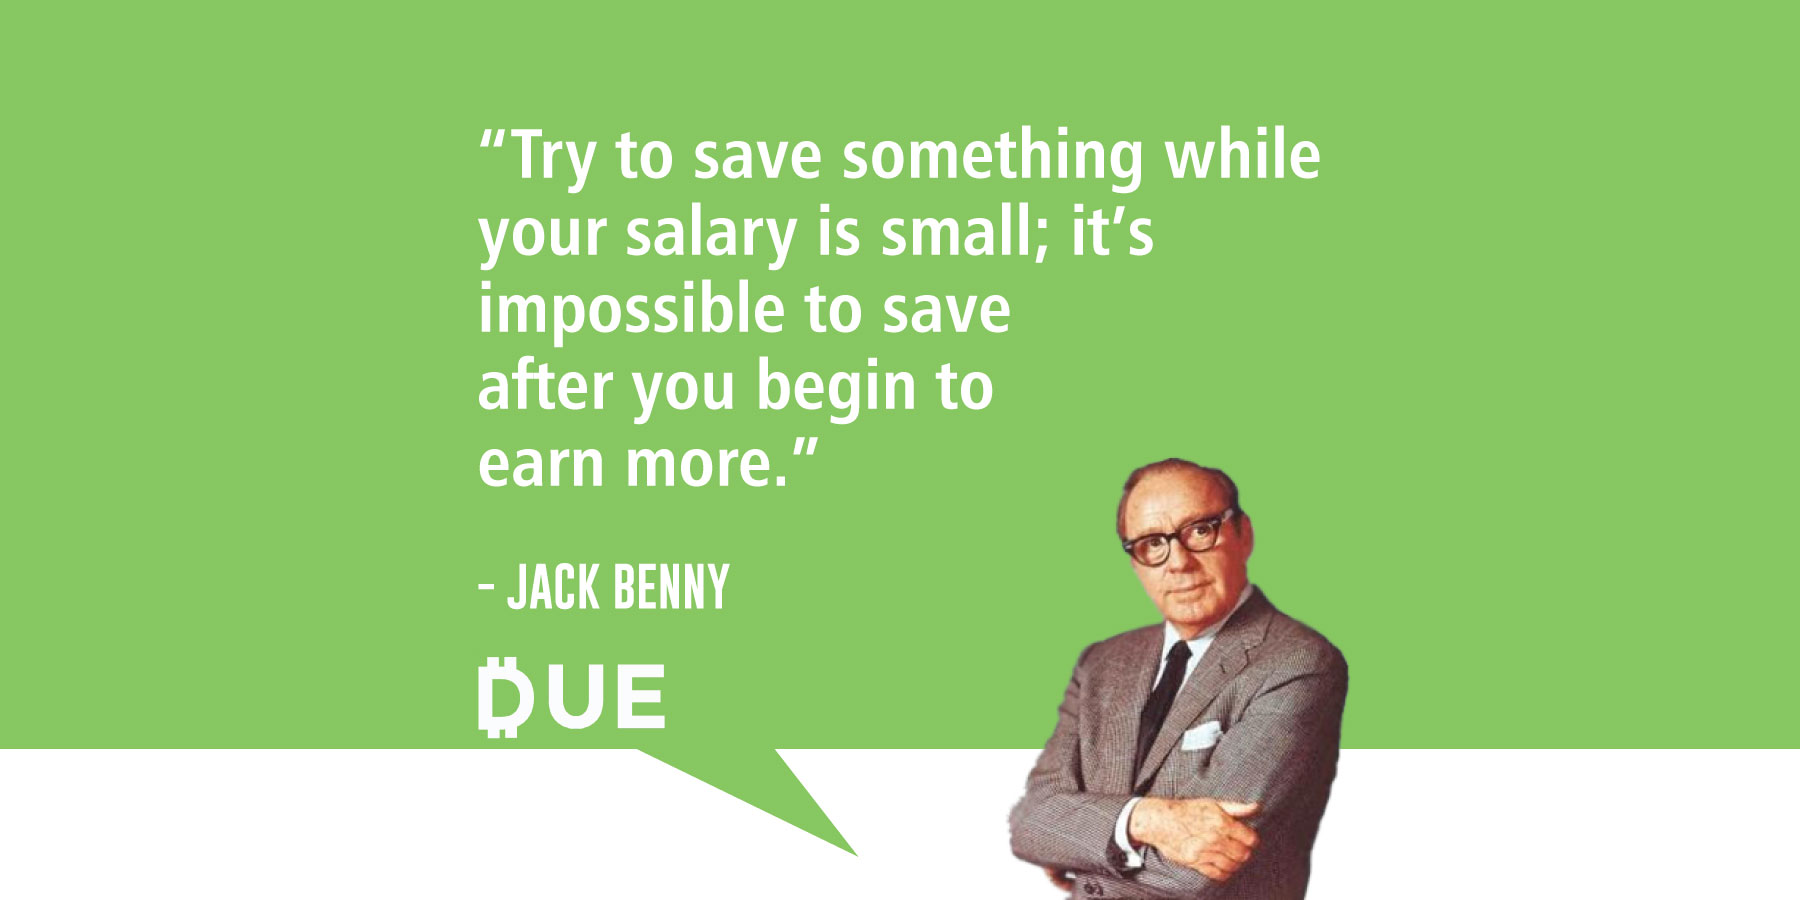 Jack Benny - Saving When You Have Nothing